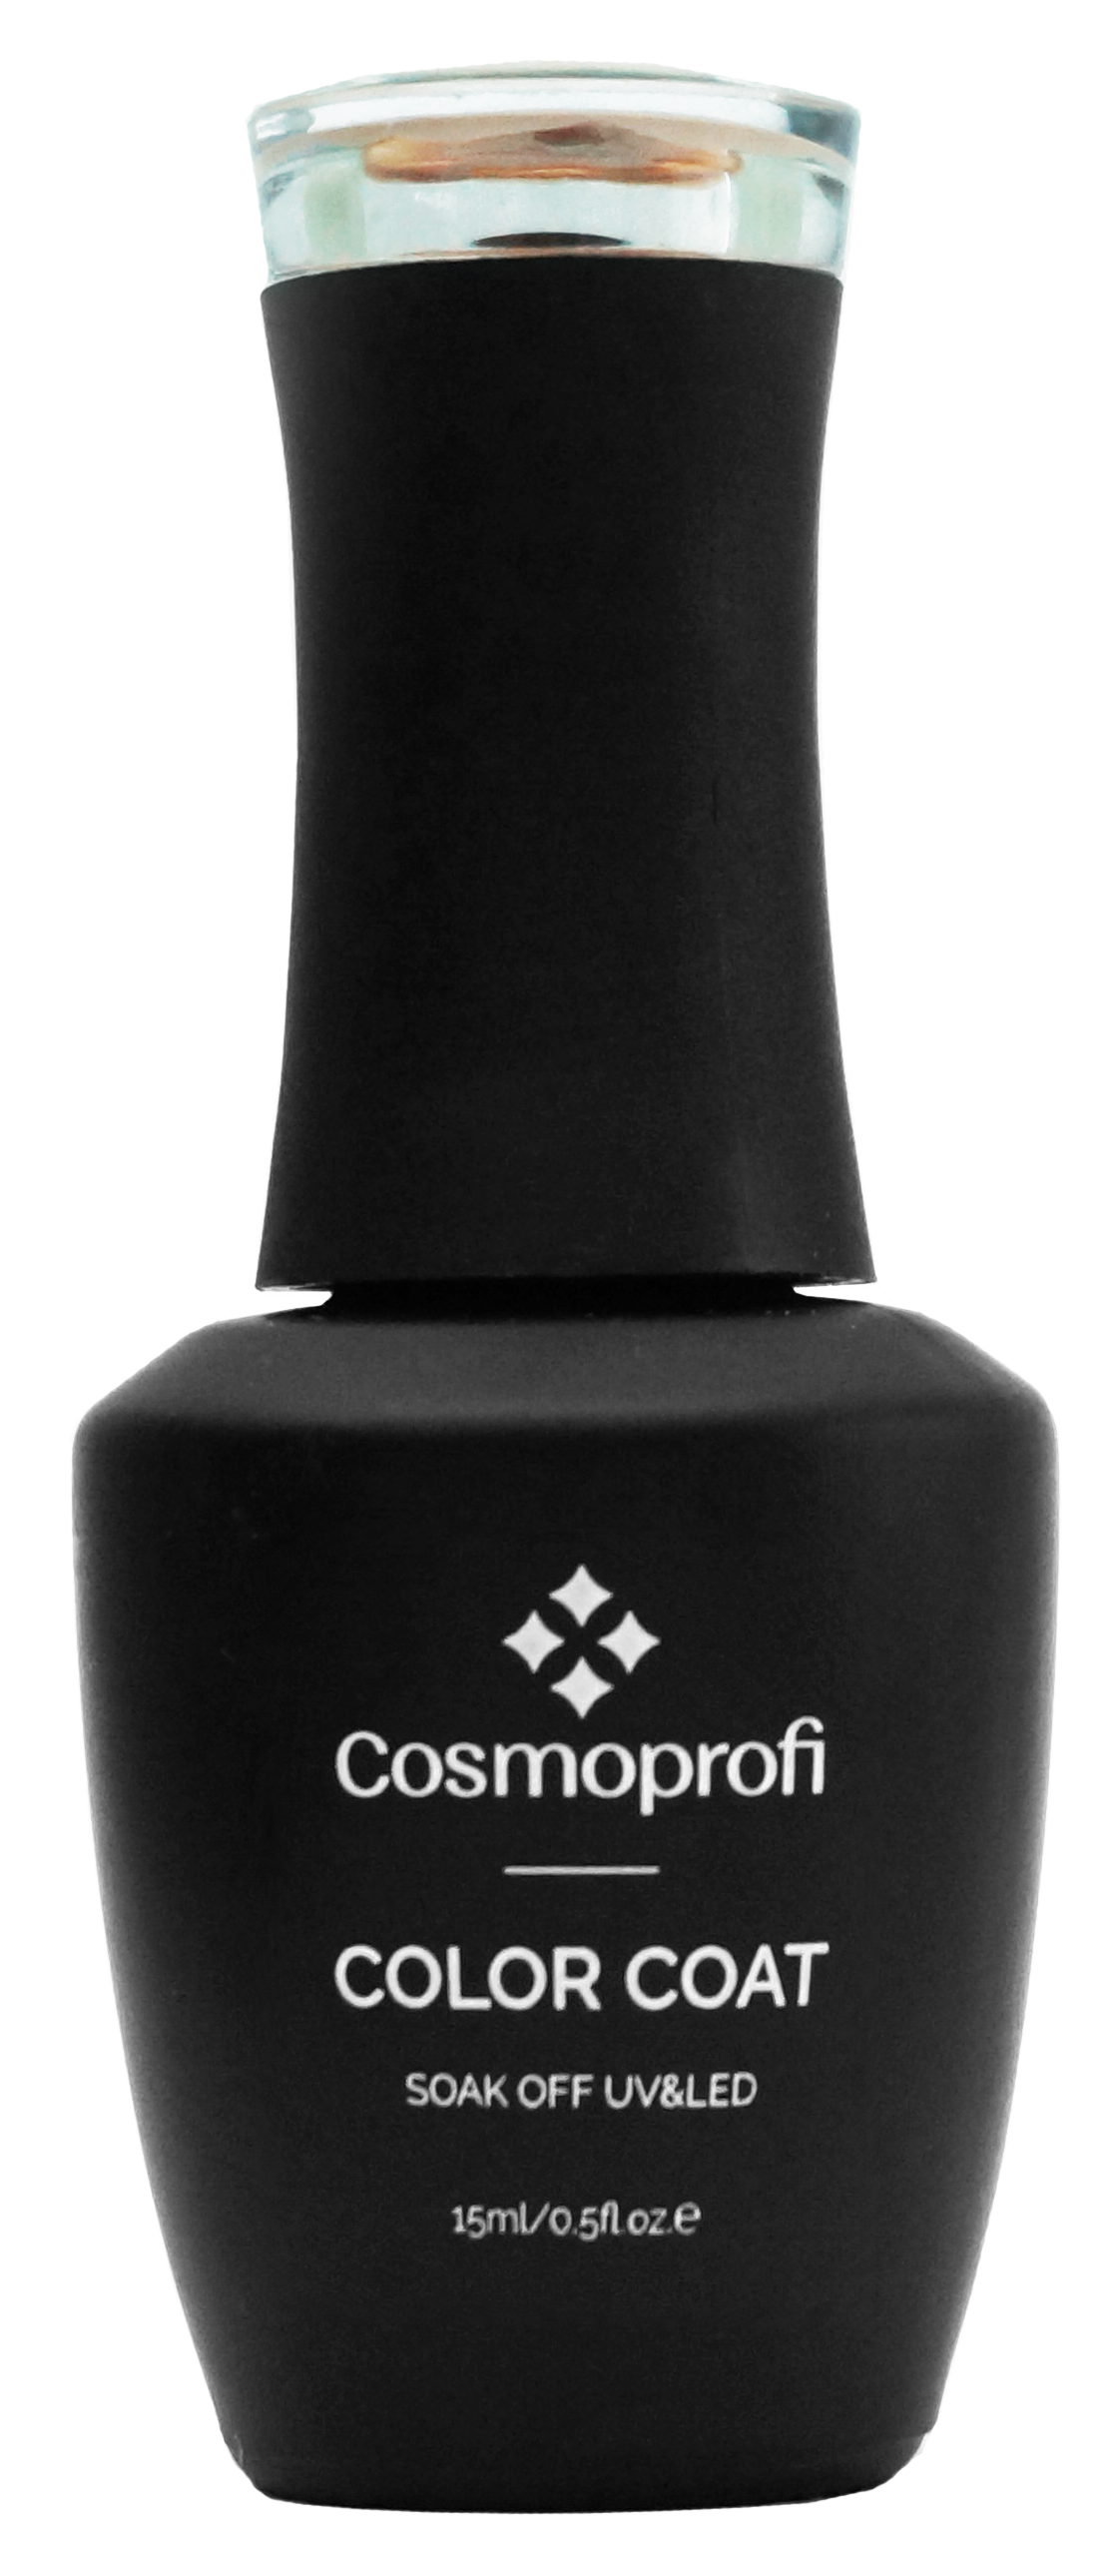 Гель-лак Cosmoprofi, Color coat № 462, 15 мл